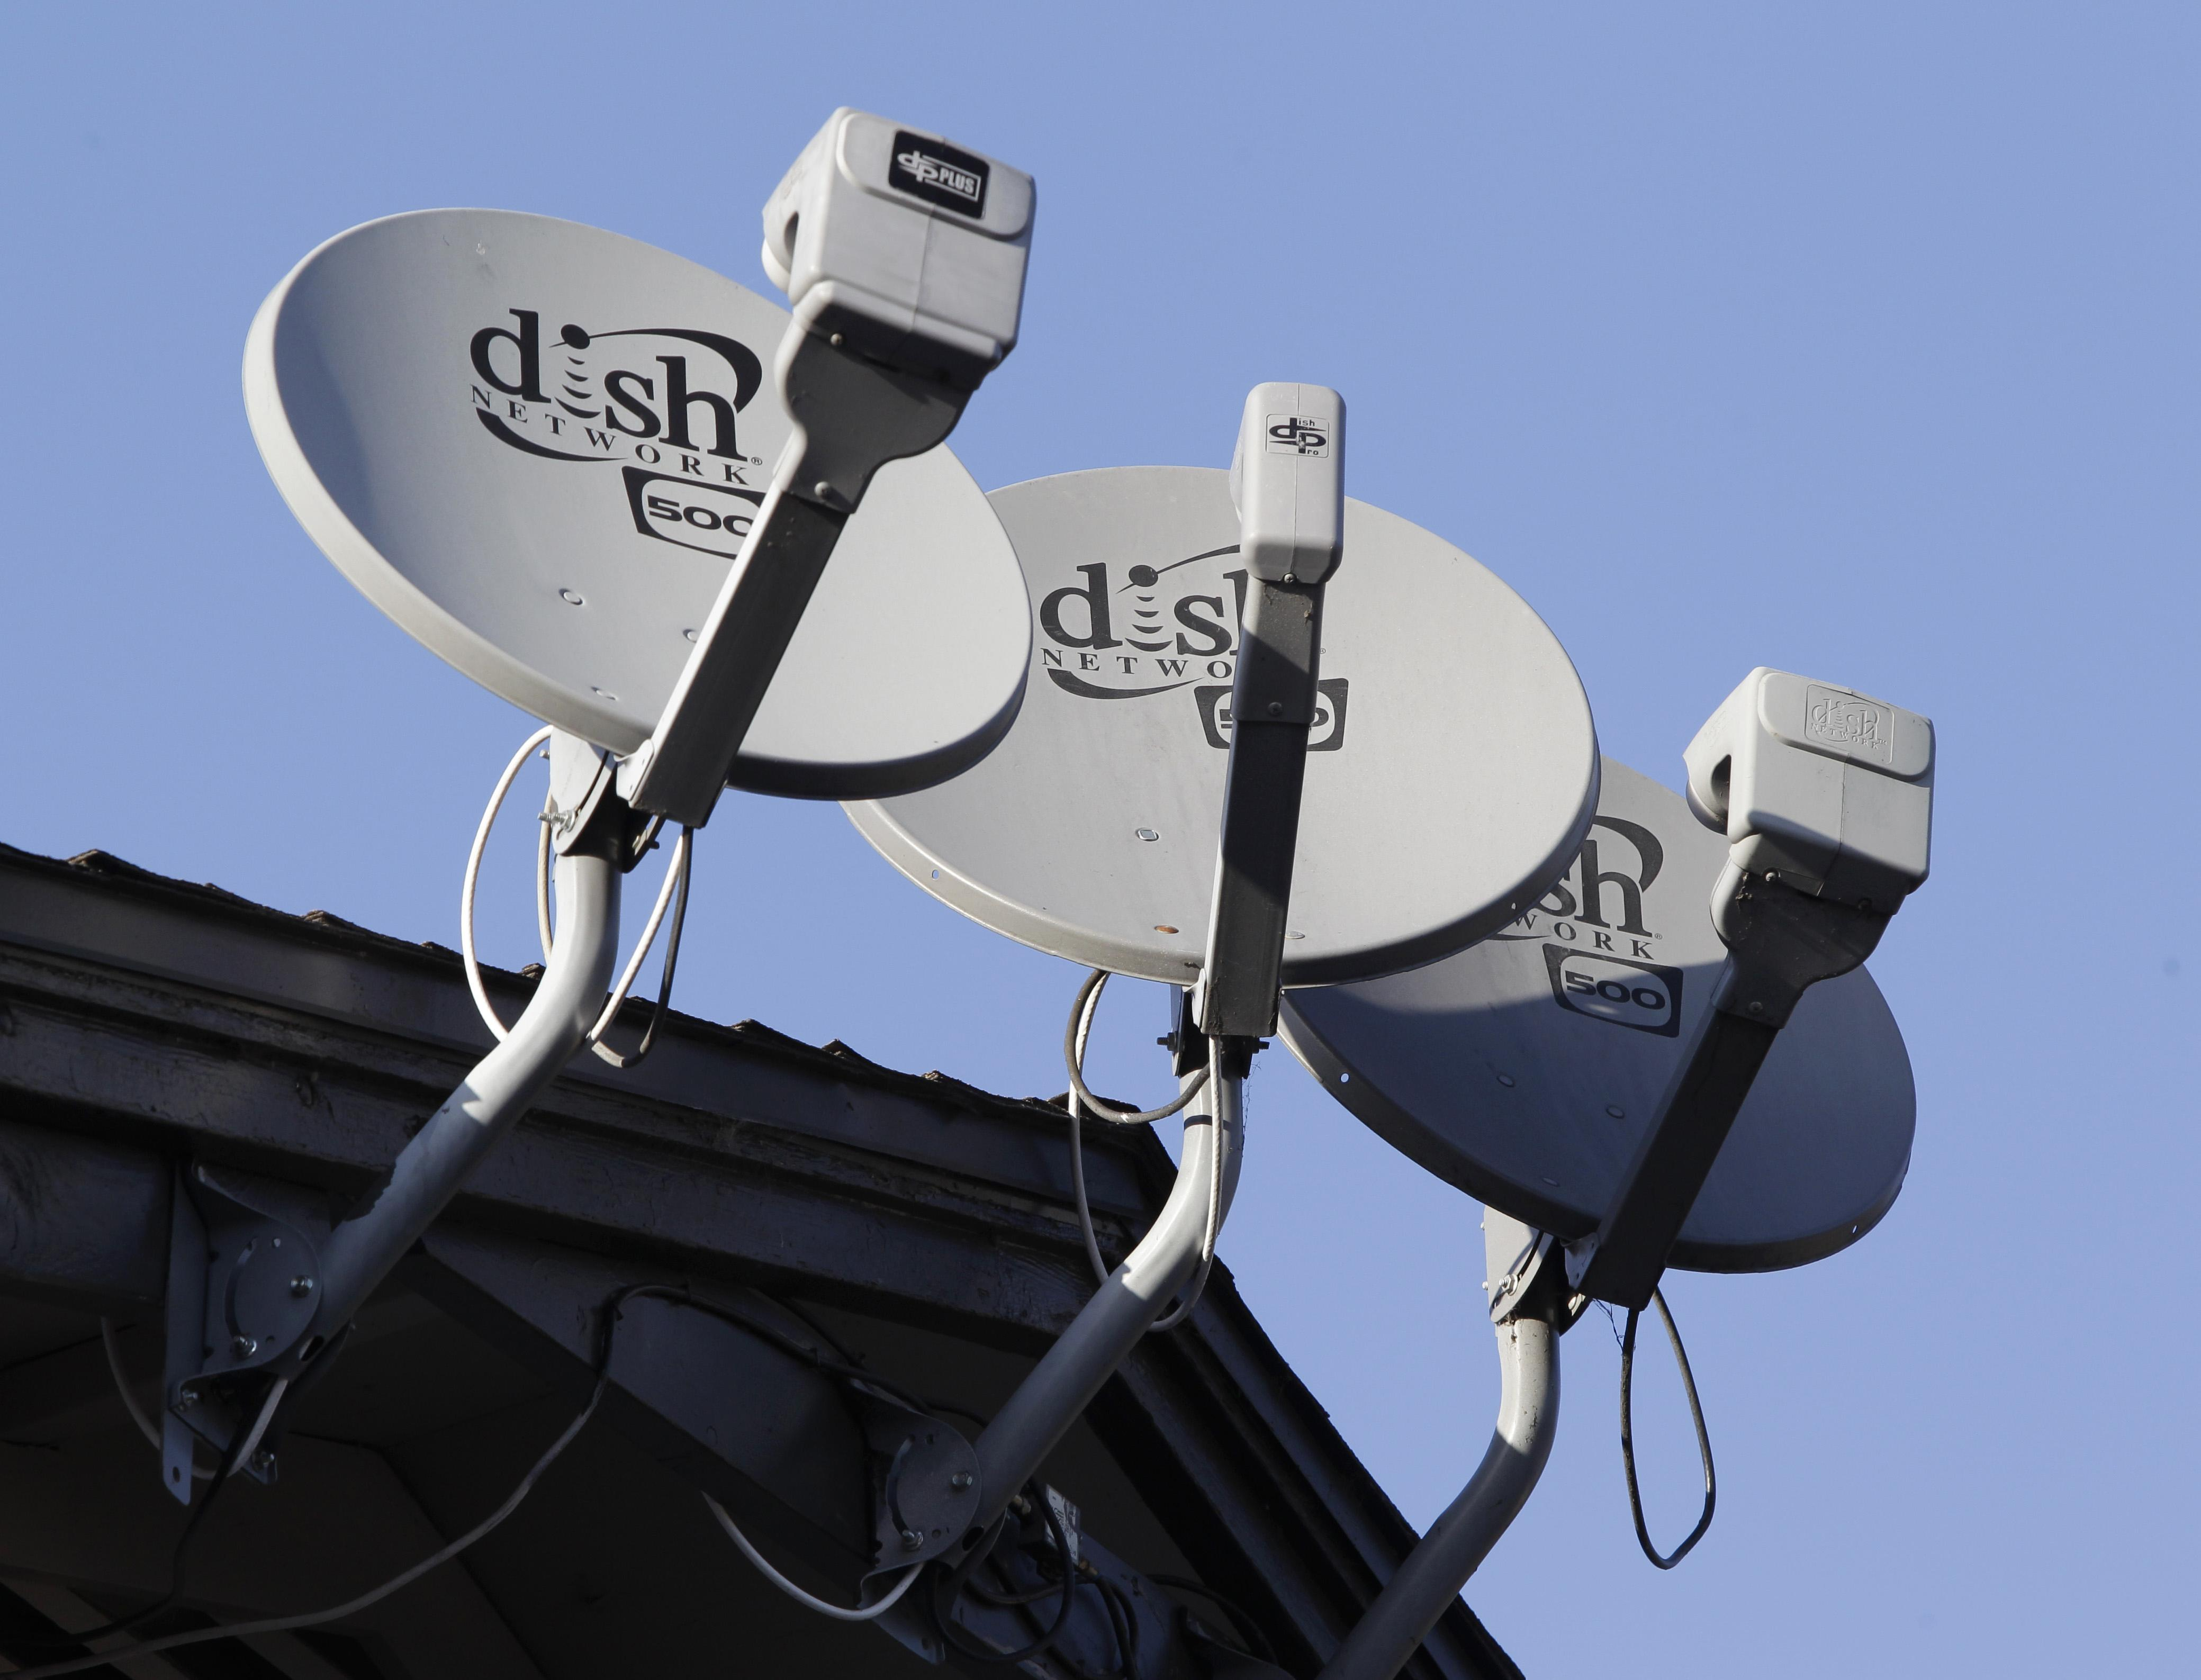 HBO channels, now controlled by AT&T, are yanked off Dish ...